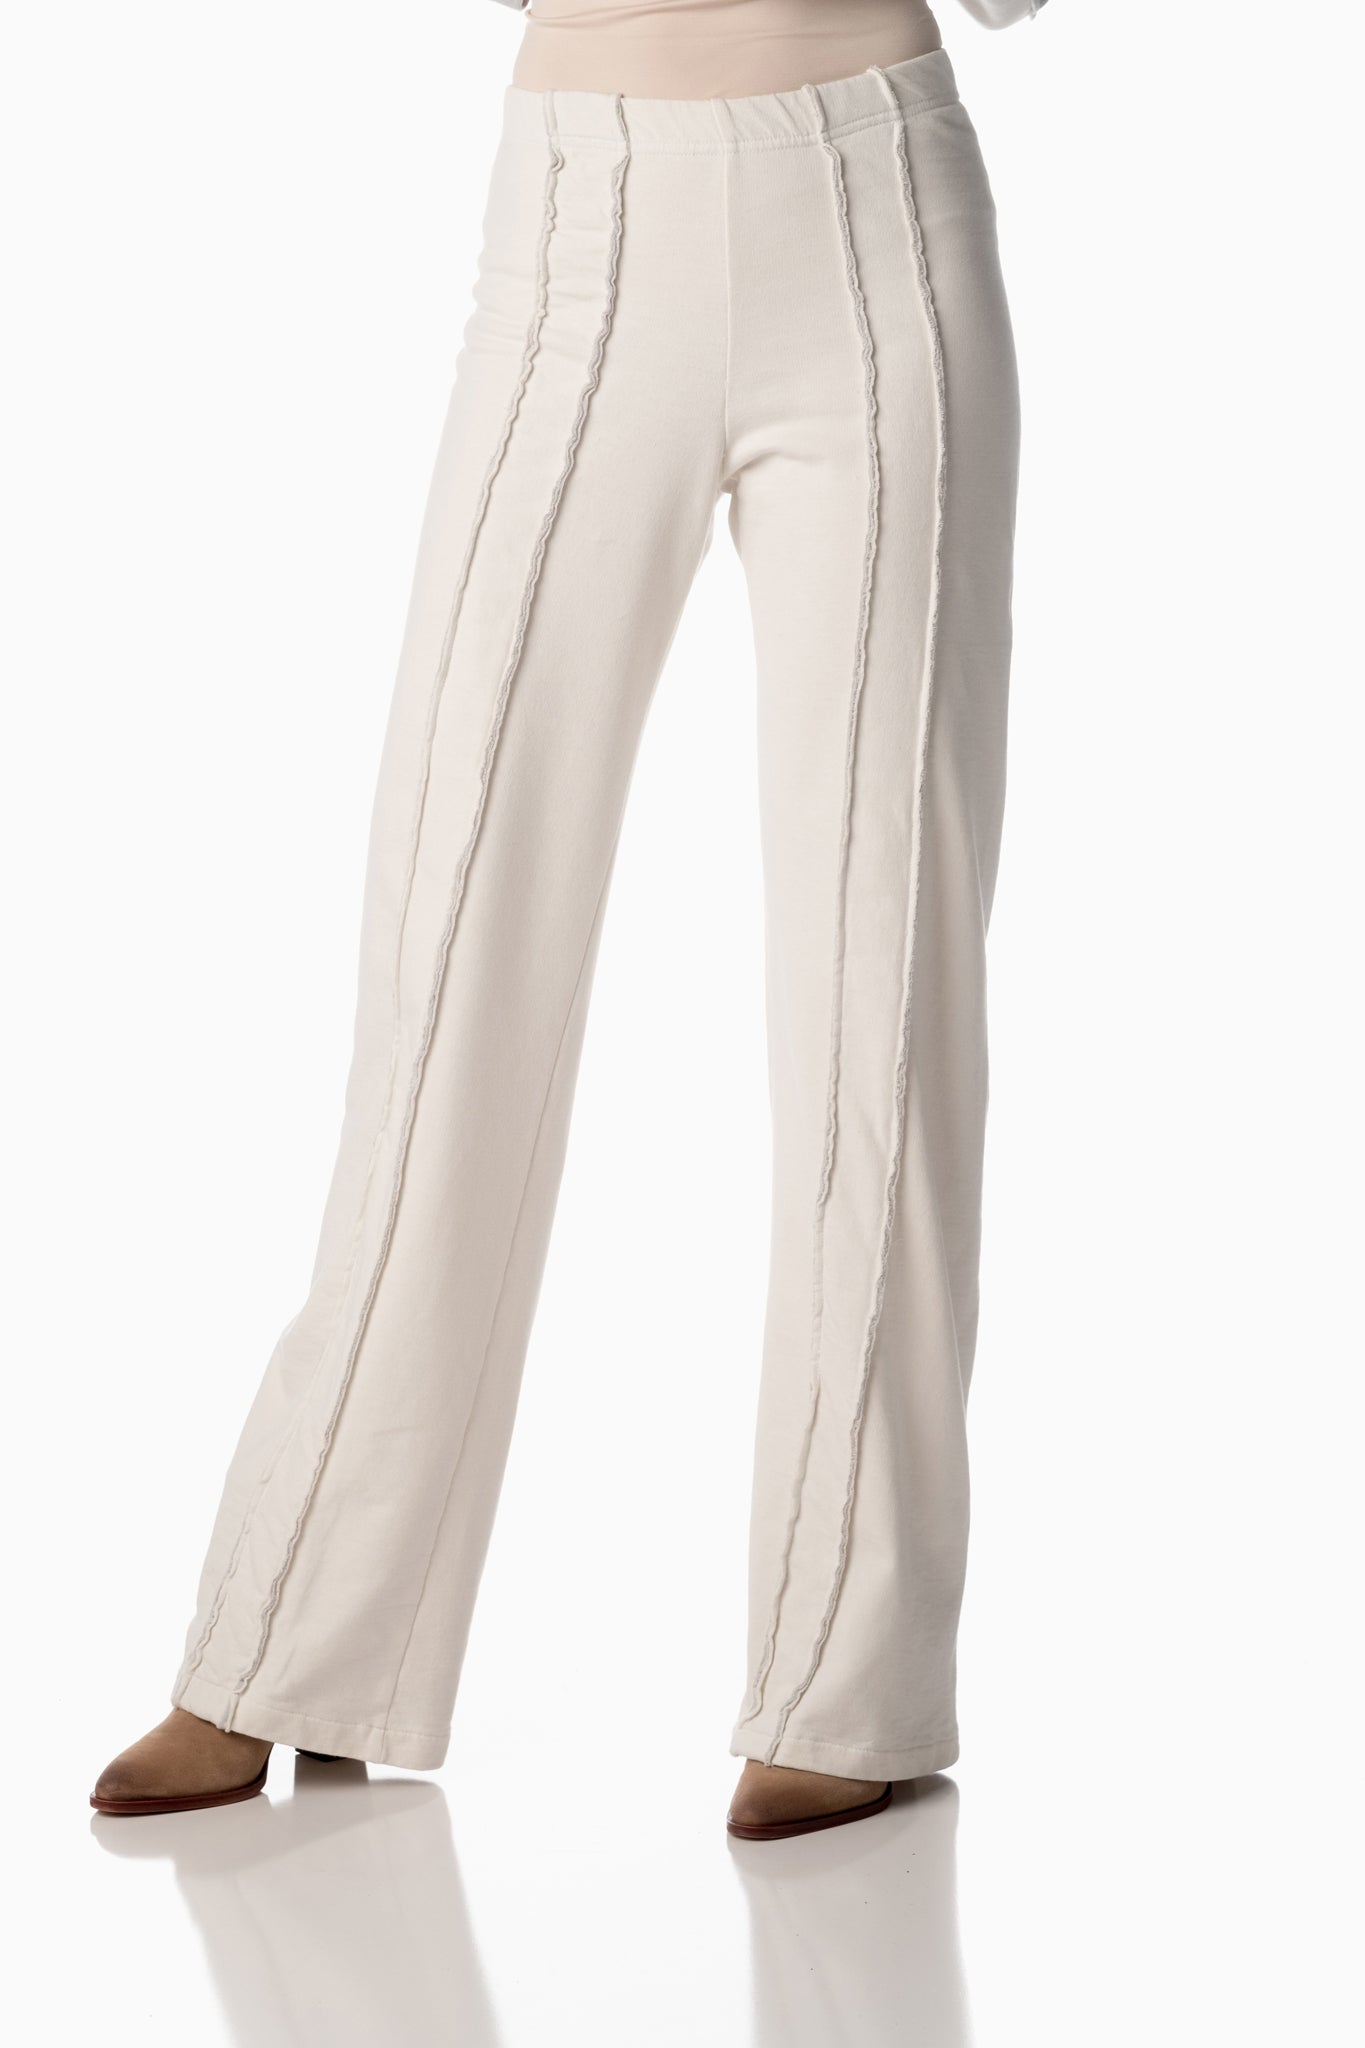 Easy-on Pants <br>Winter White | Arctic Grey Stripes